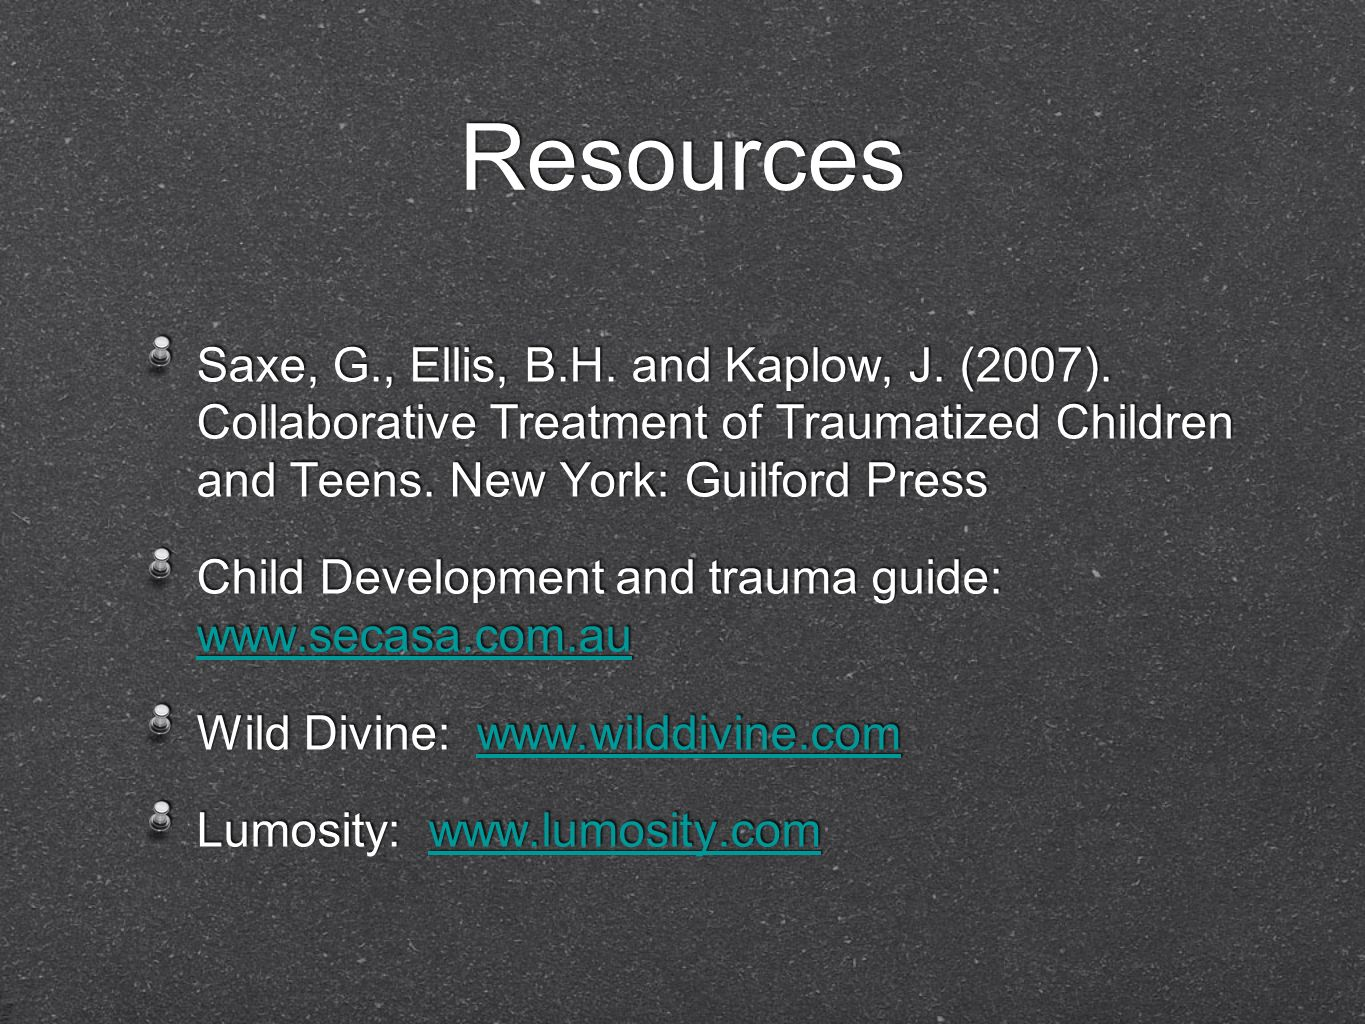 Resources Saxe, G., Ellis, B.H. and Kaplow, J. (2007). Collaborative Treatment of Traumatized Children and Teens. New York: Guilford Press.